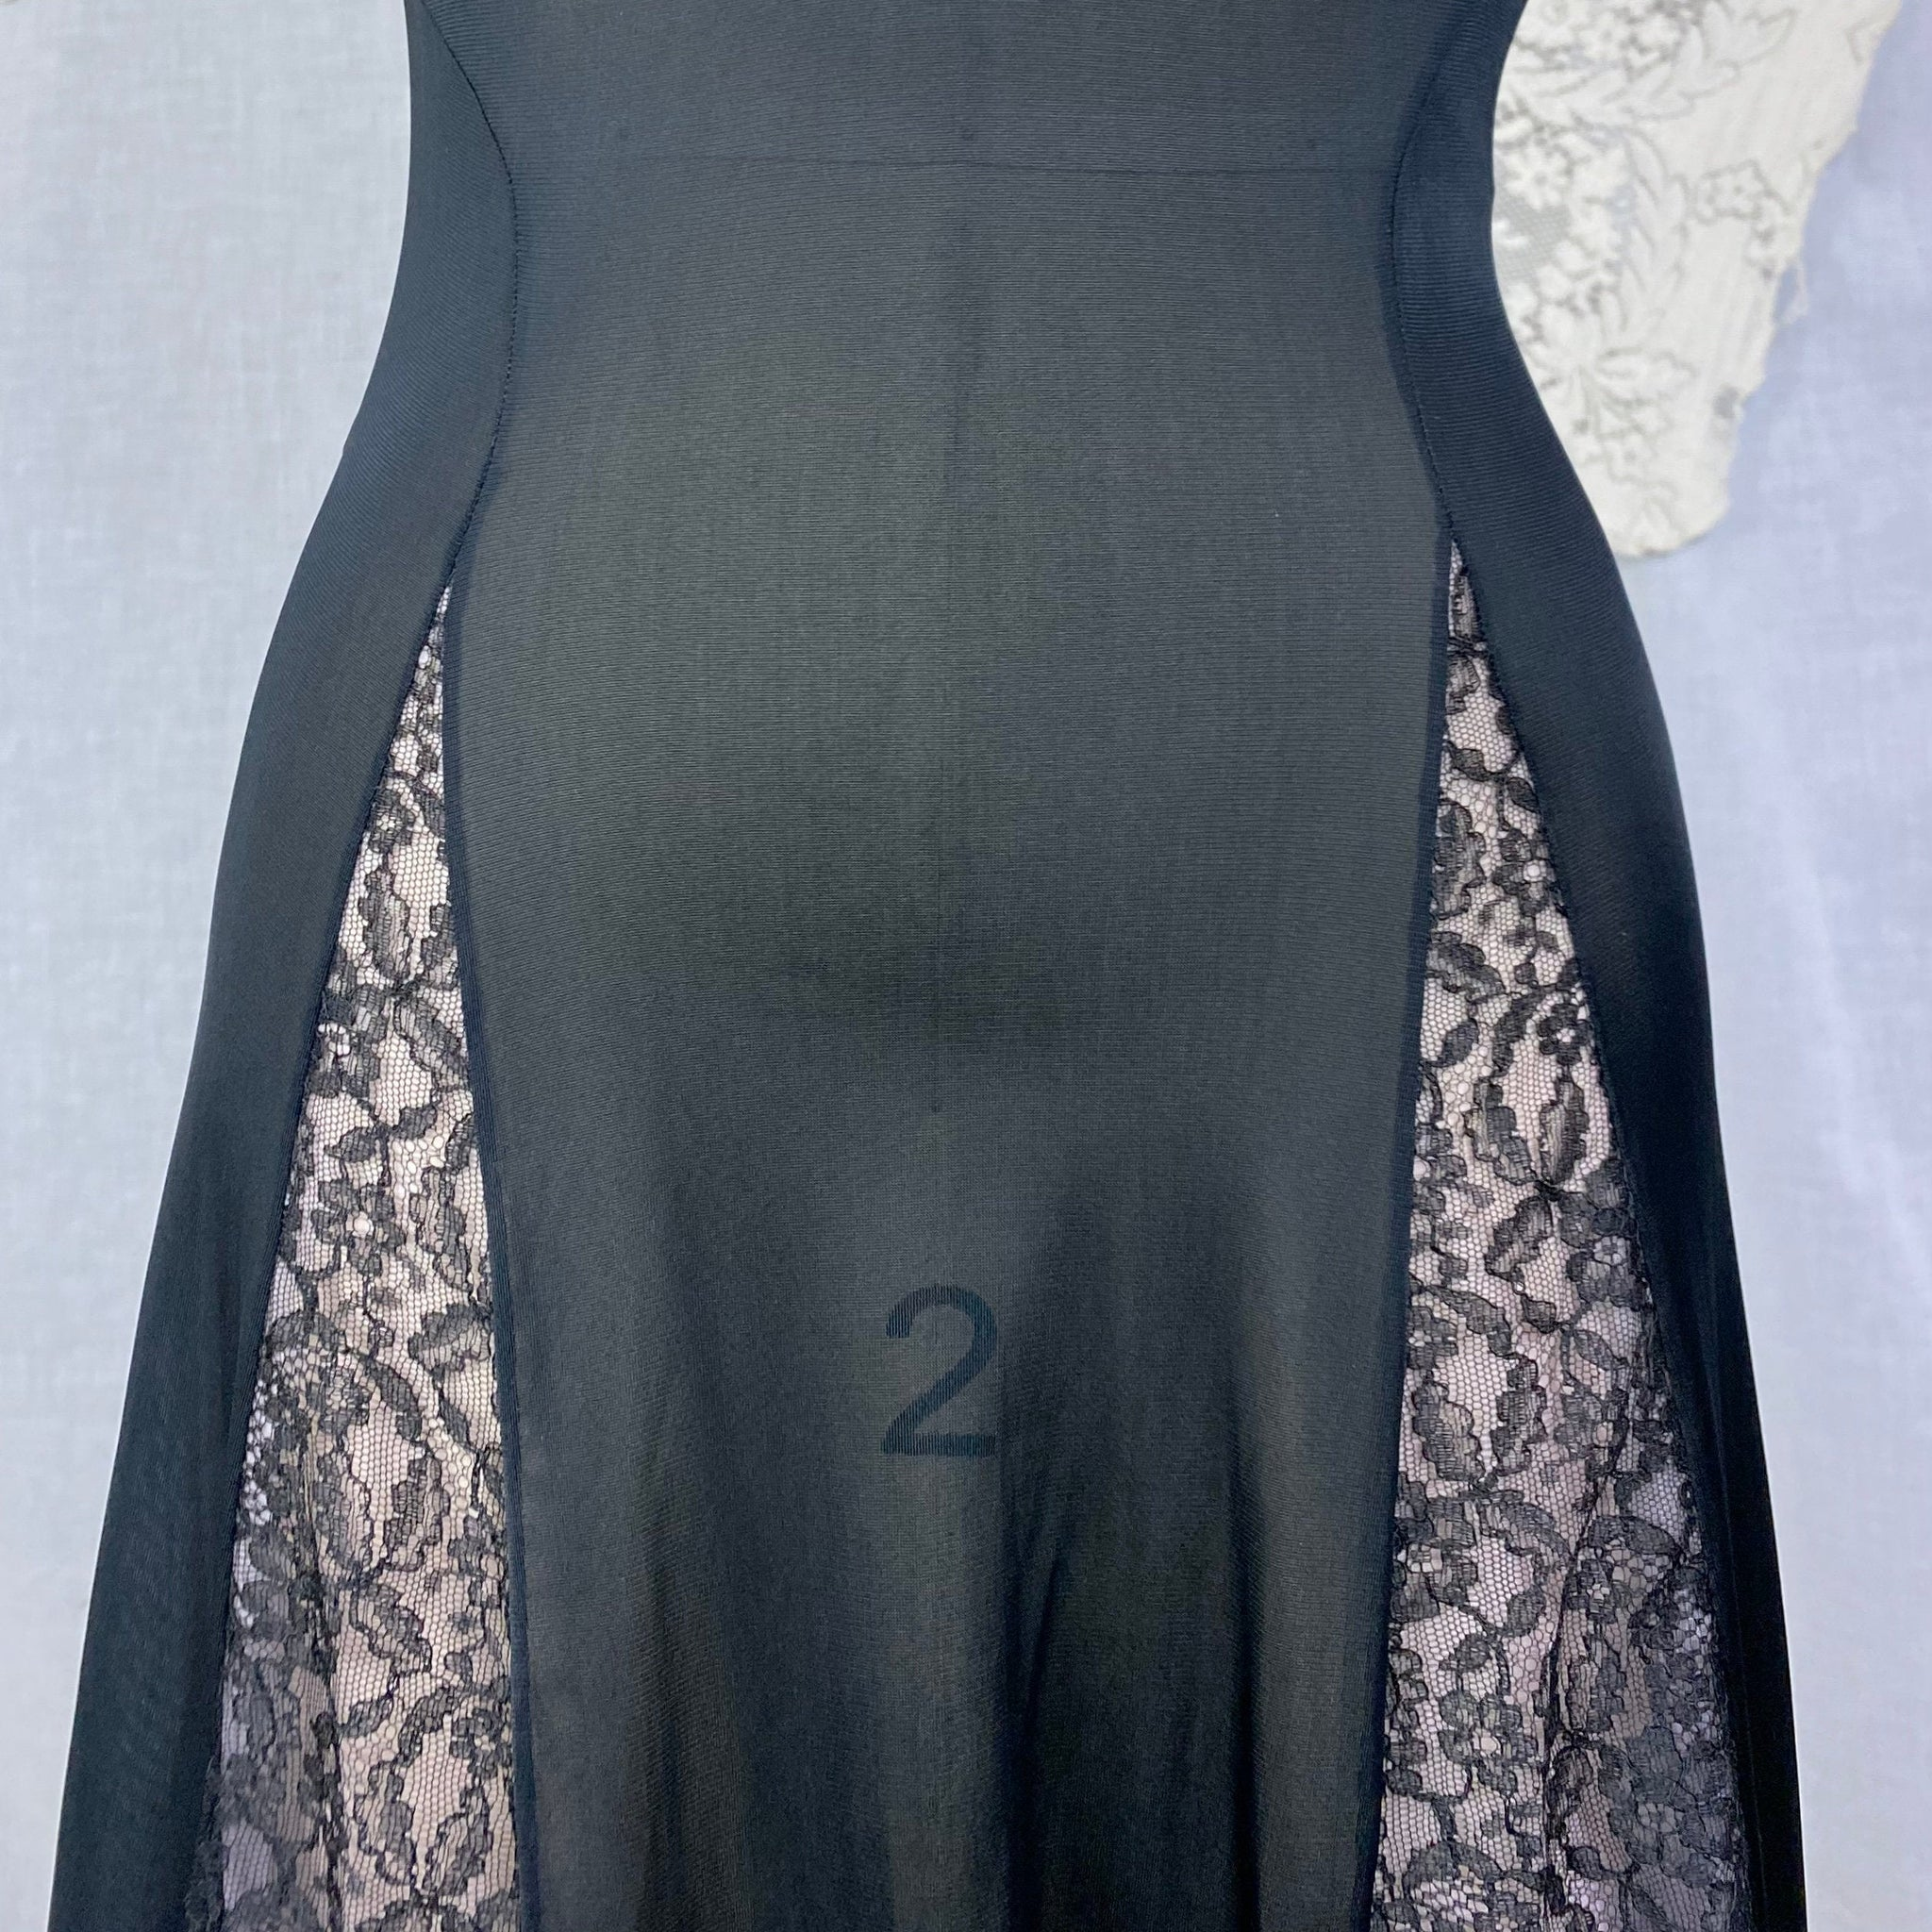 Vintage 1960's Nightgown | Black Nylon with Sheer Lace Illusion Panels over Pink | Size XS, S | Rogers